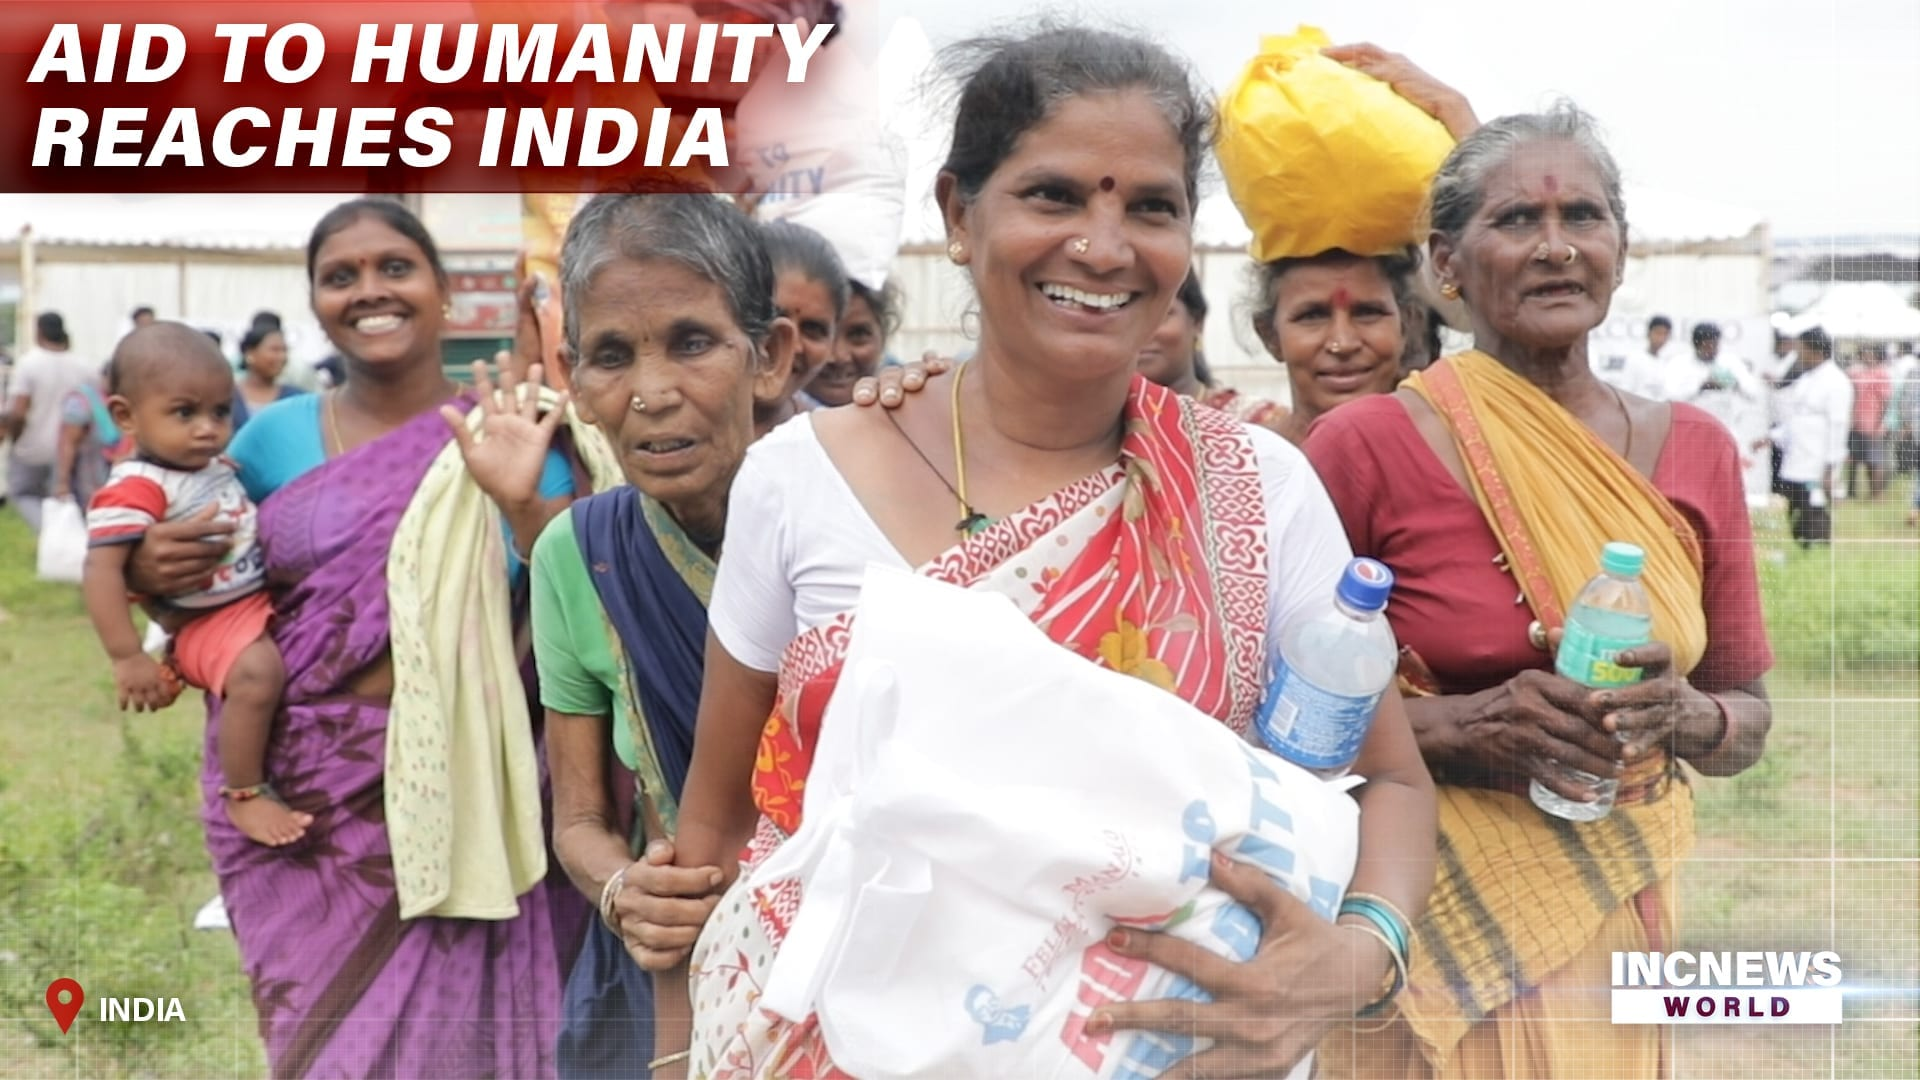 AID TO HUMANITY REACHES INDIA